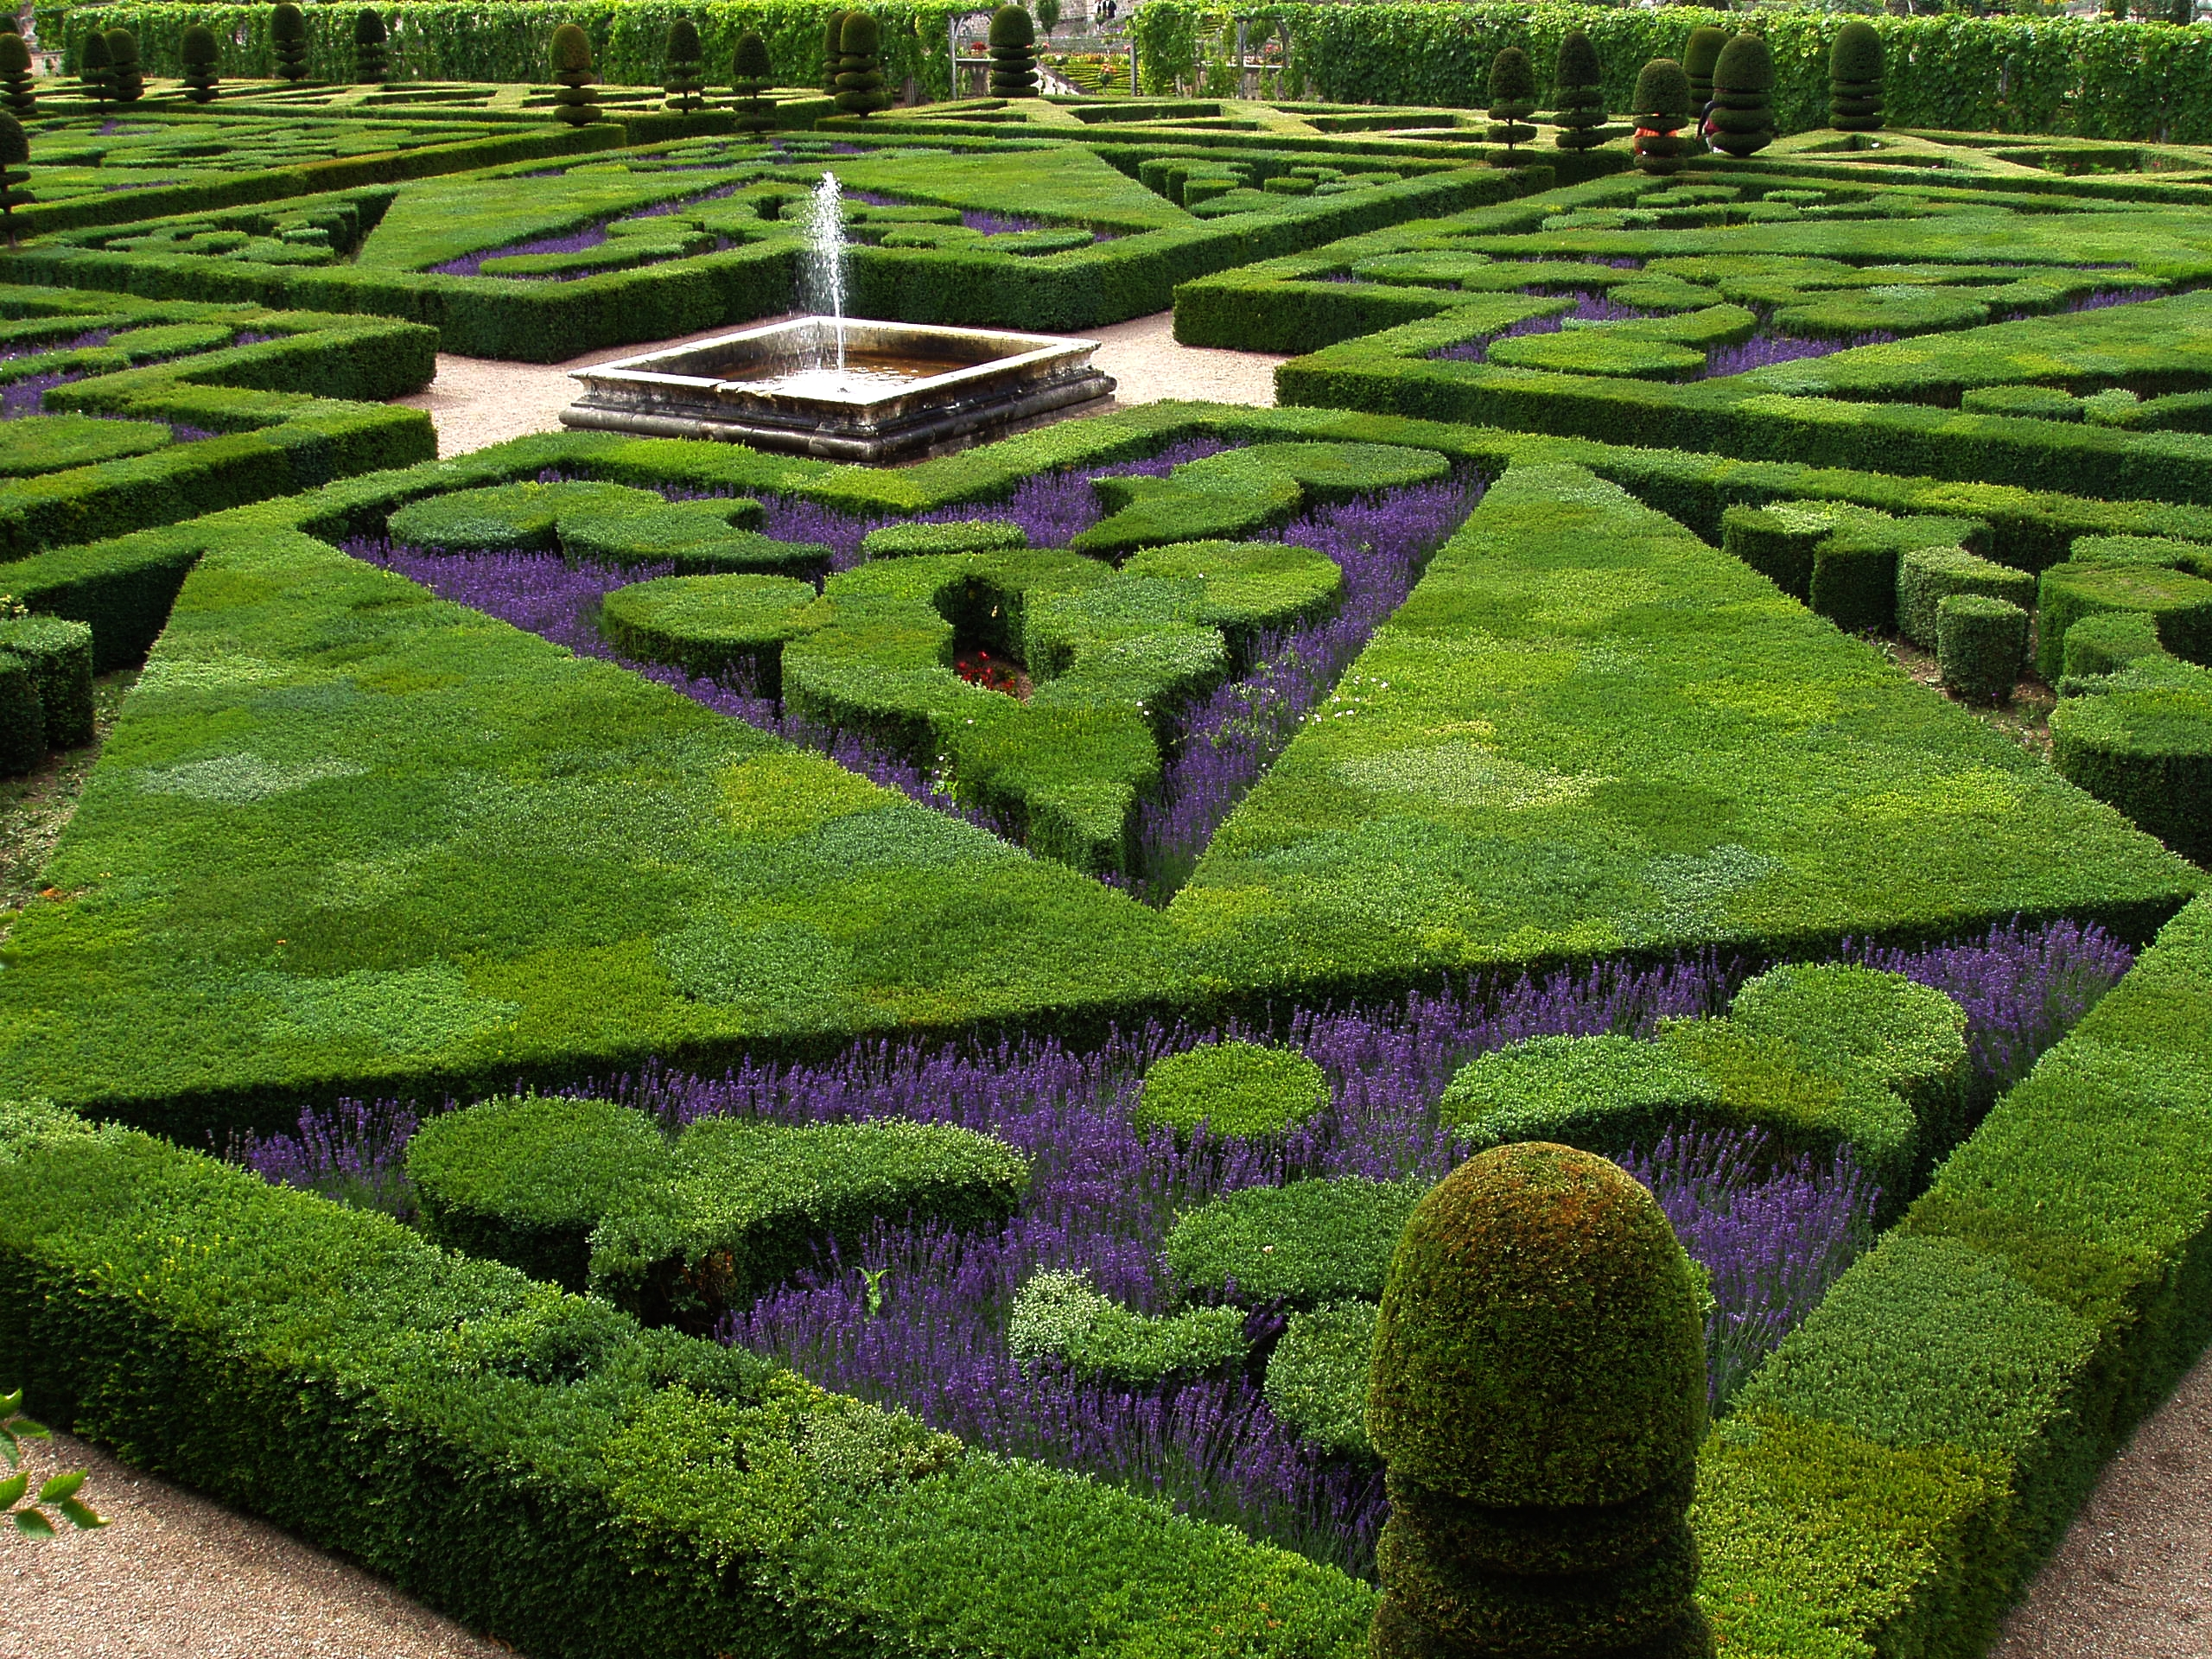 Images Gardens garden of love at château de villandry: most romantic gardens in